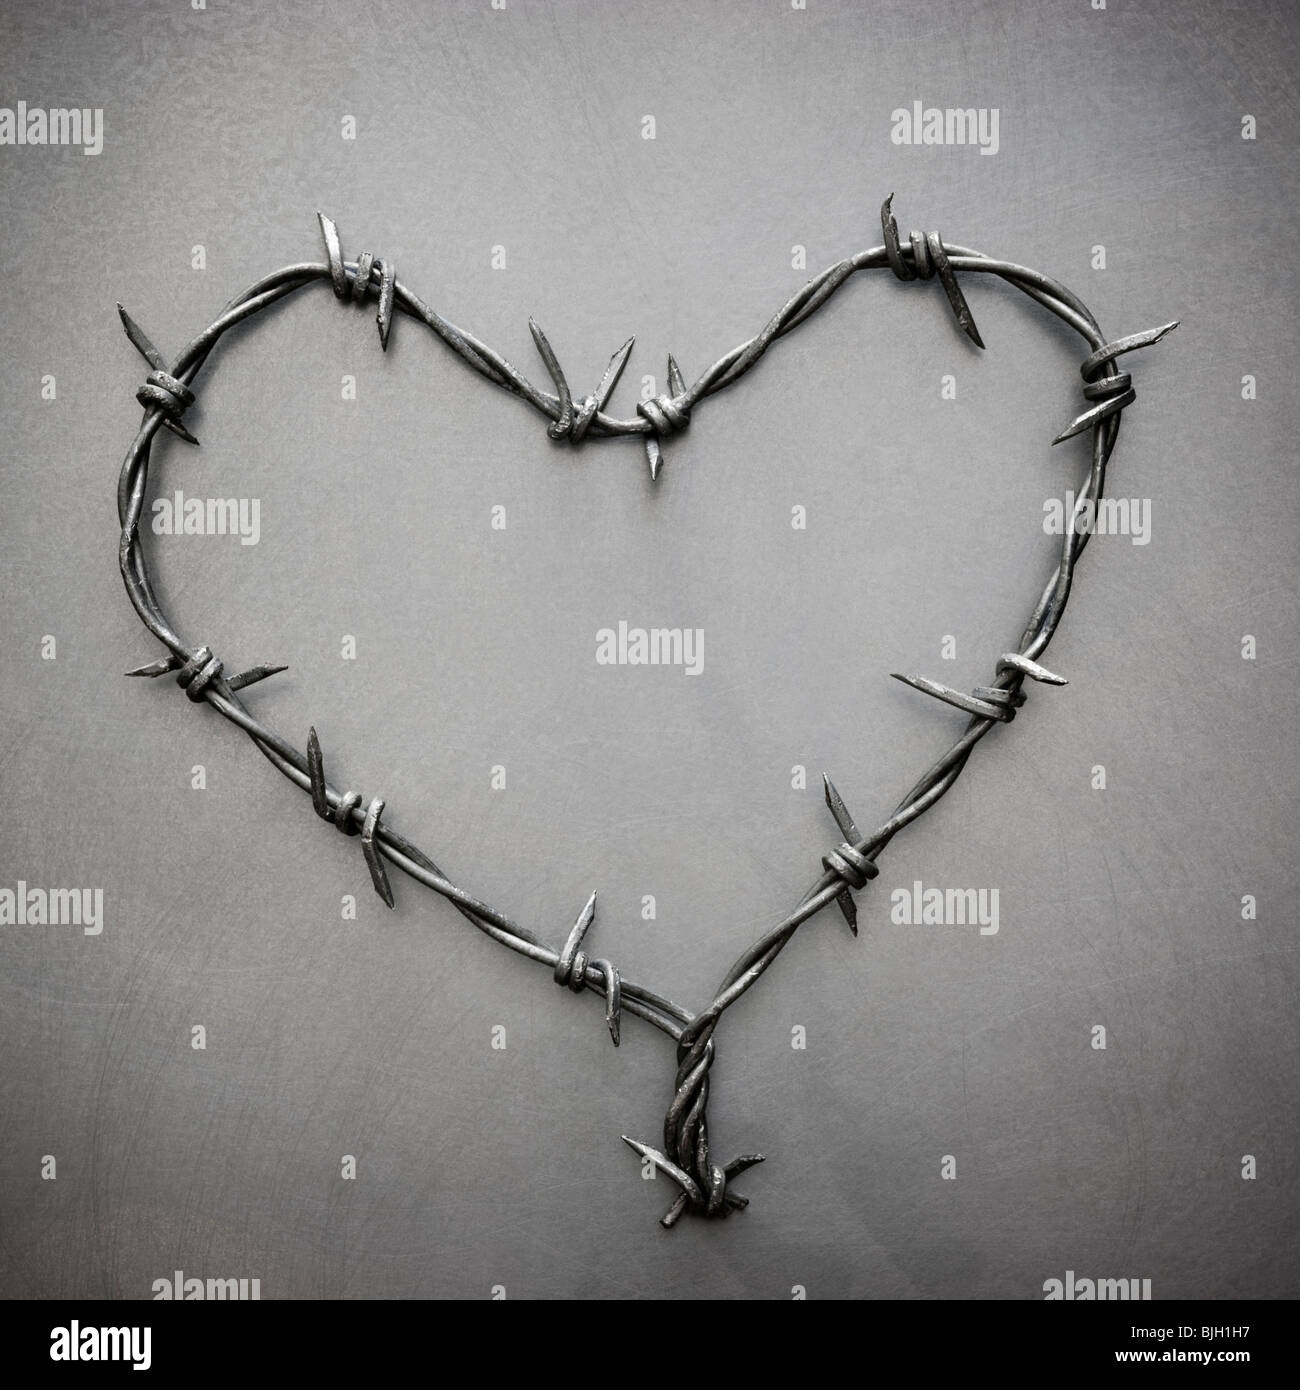 barbed wire heart Stock Photo: 28648627 - Alamy